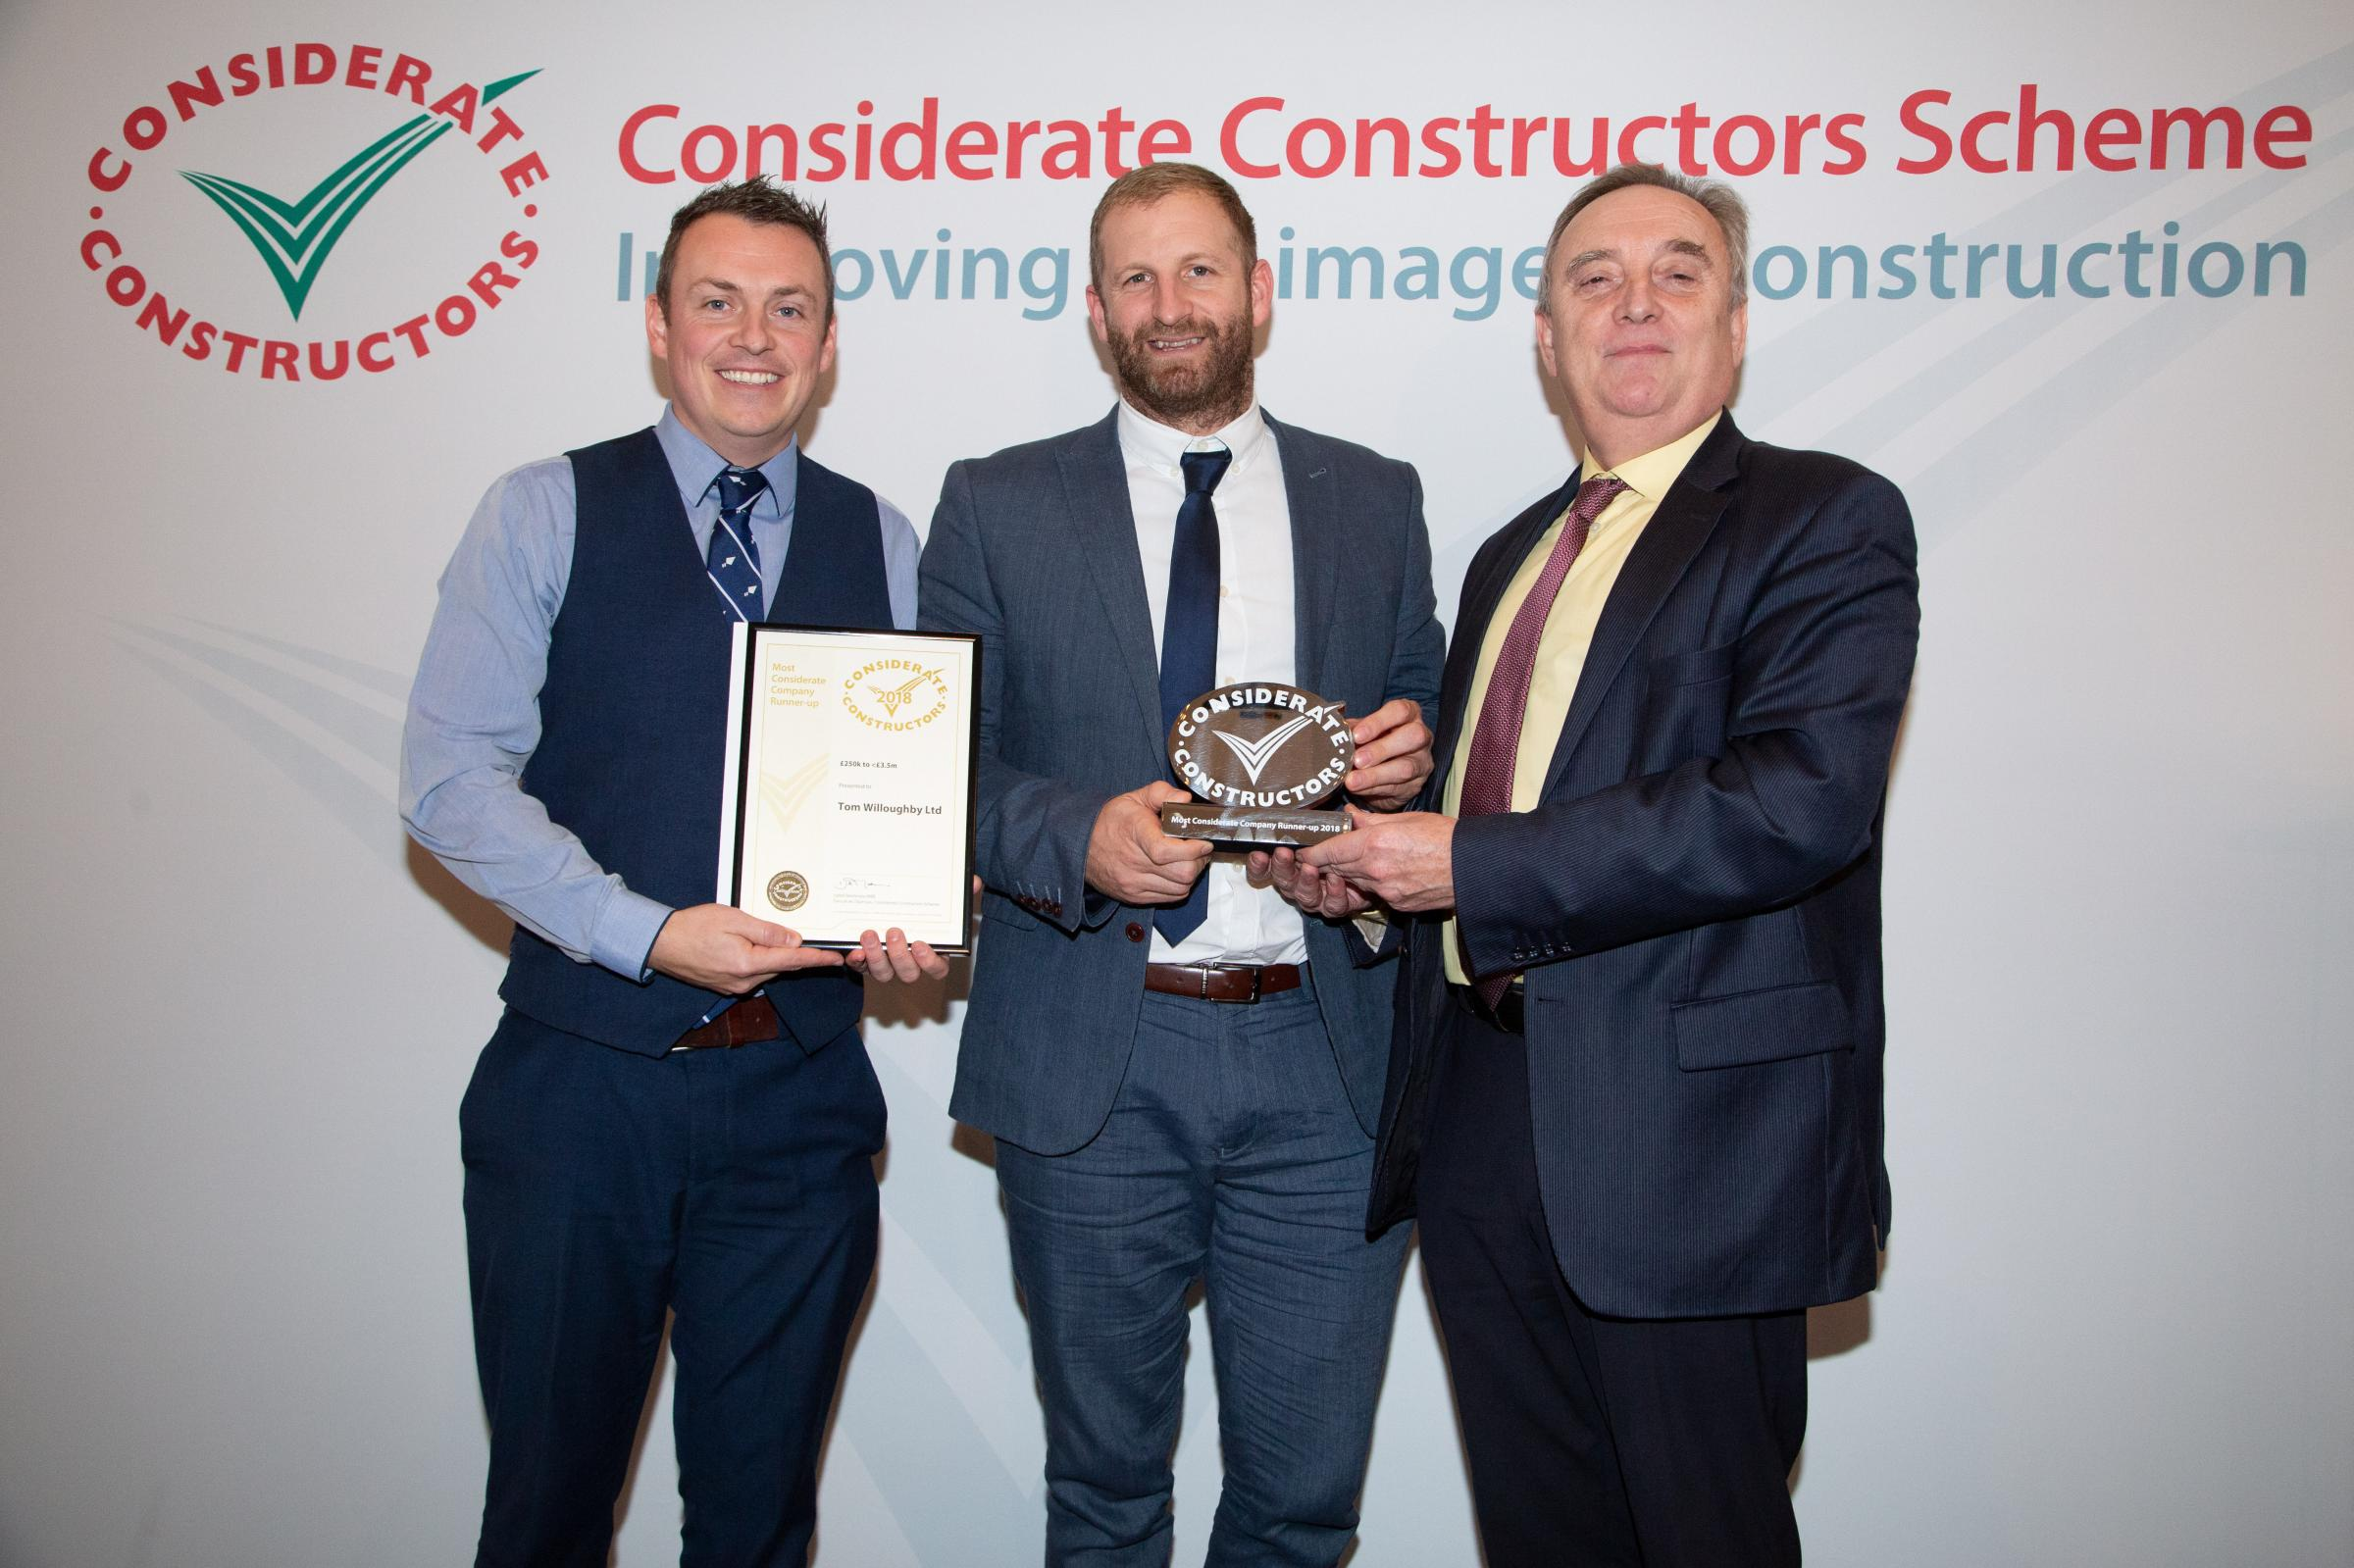 WINNERS … Andrew Blair, left, and Dean Wilson, centre, receive their CCS Award from Shaun McCarthy OBE